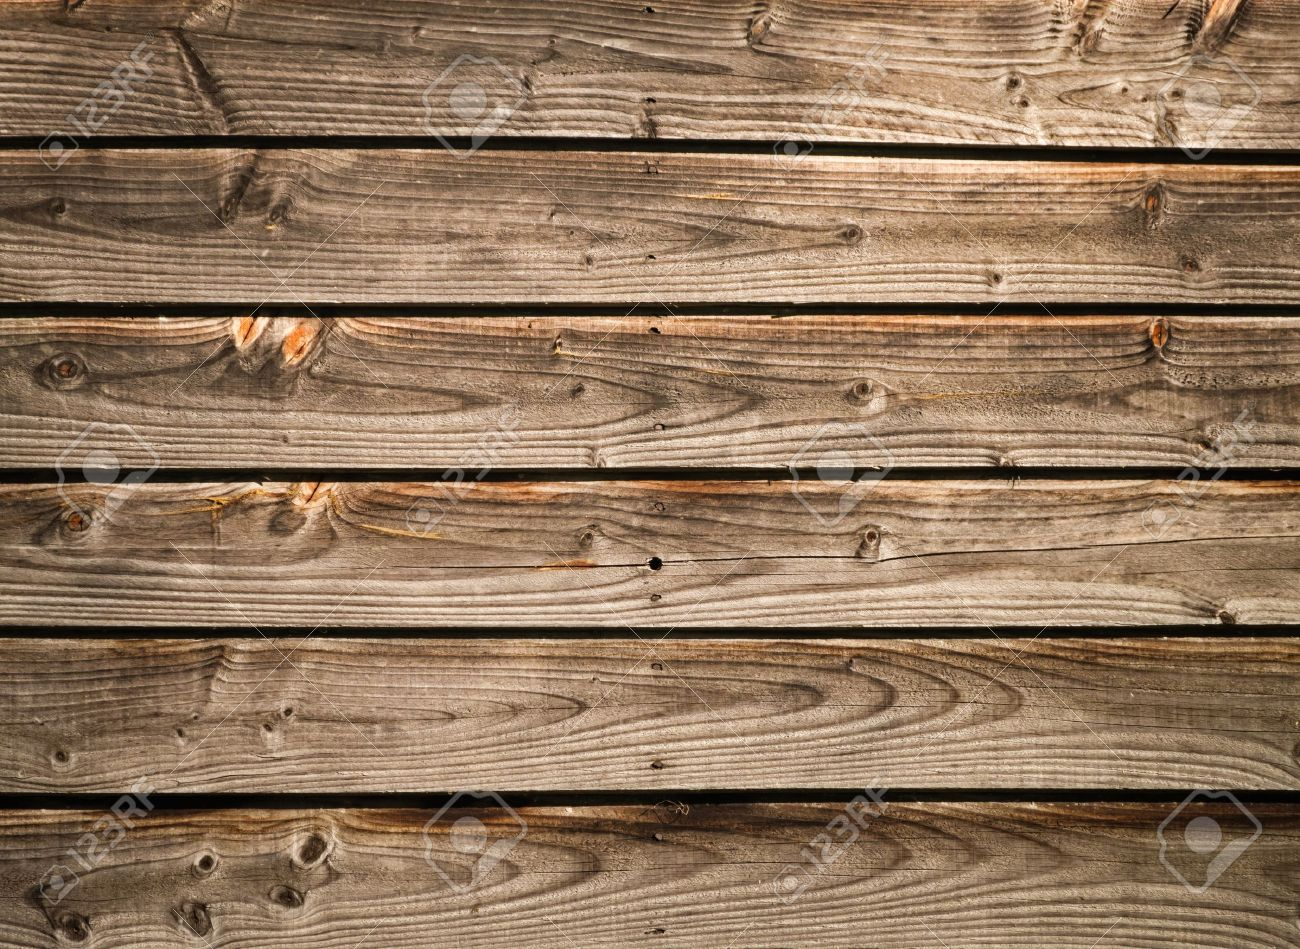 aged wood texture from barn stock photo, picture and royalty freeaged wood texture from barn stock photo 11430652